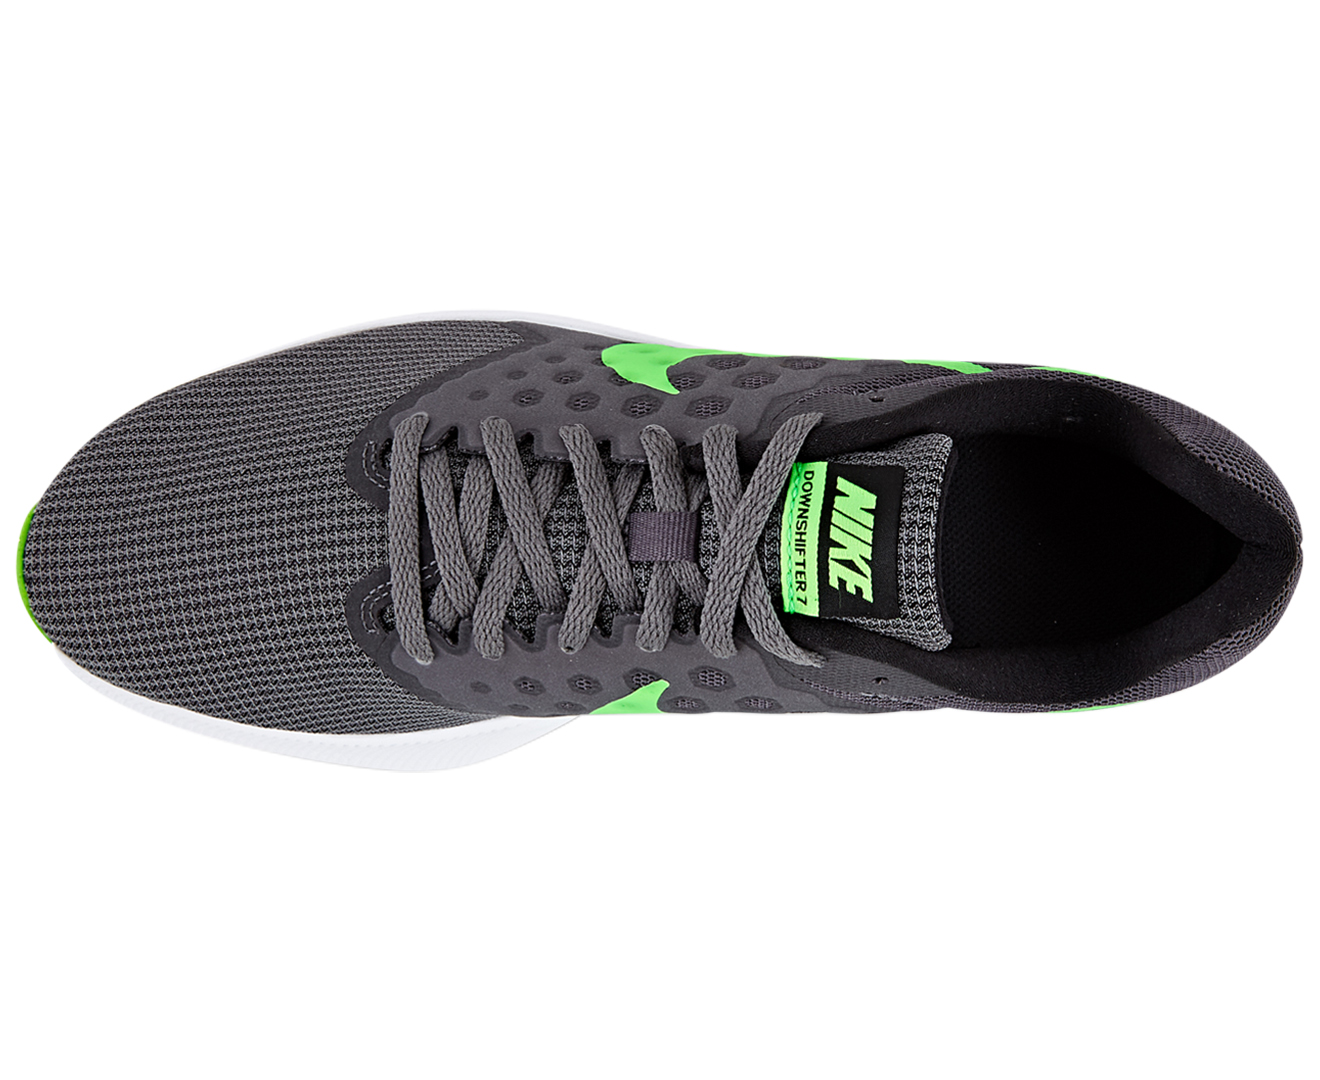 Nike Men's Downshifter 7 Shoe - Dark Grey/Rage Green-White | Great daily  deals at Australia's favourite superstore | Catch.com.au